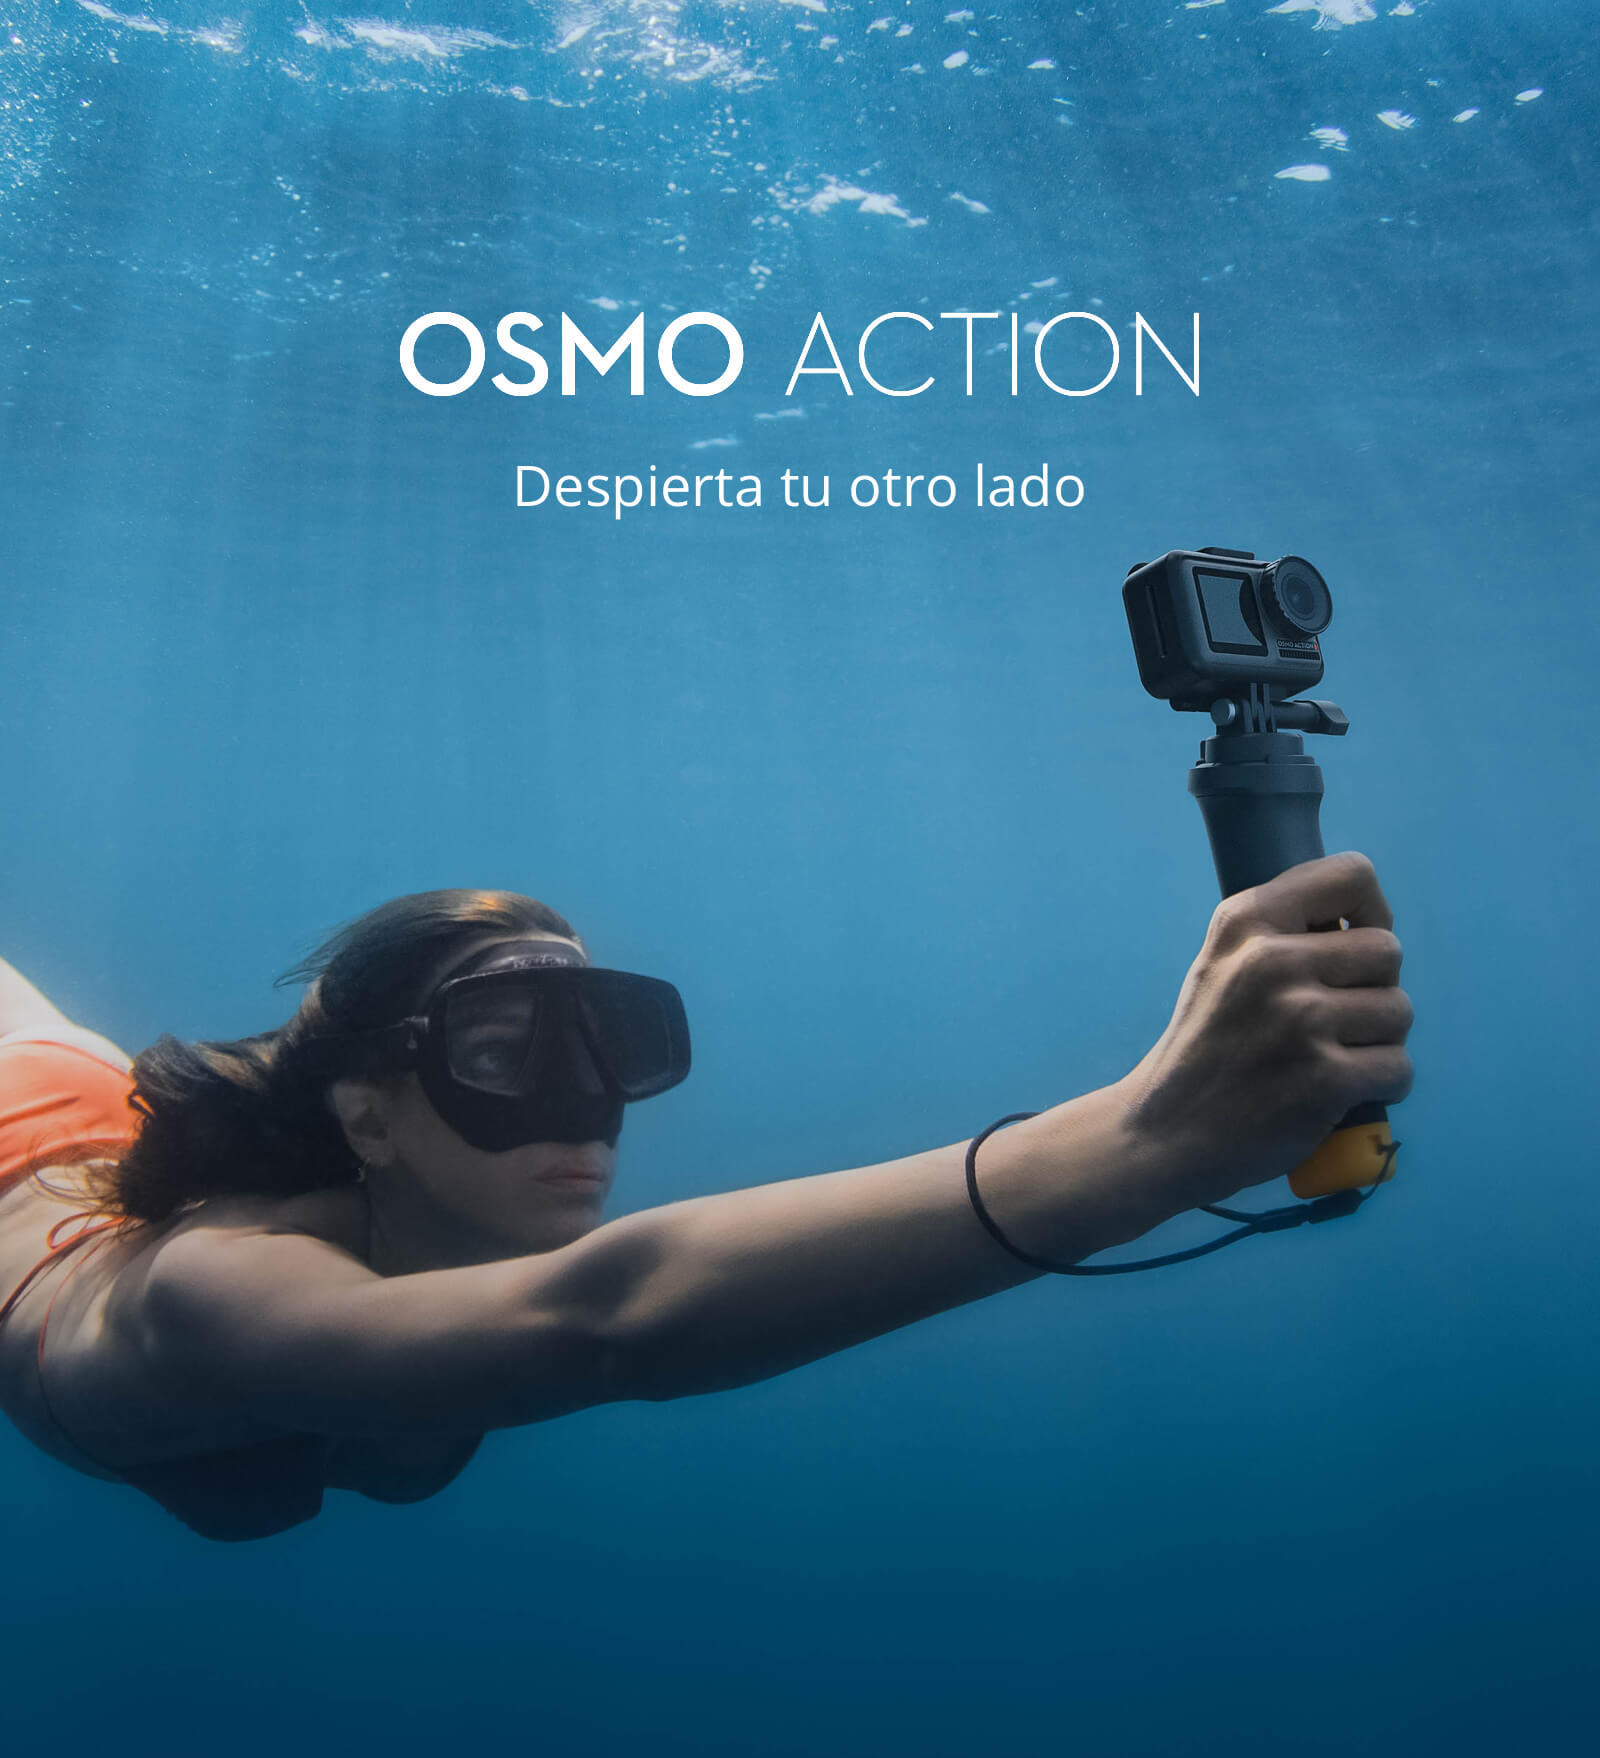 DJI_osmo_action_stockrc